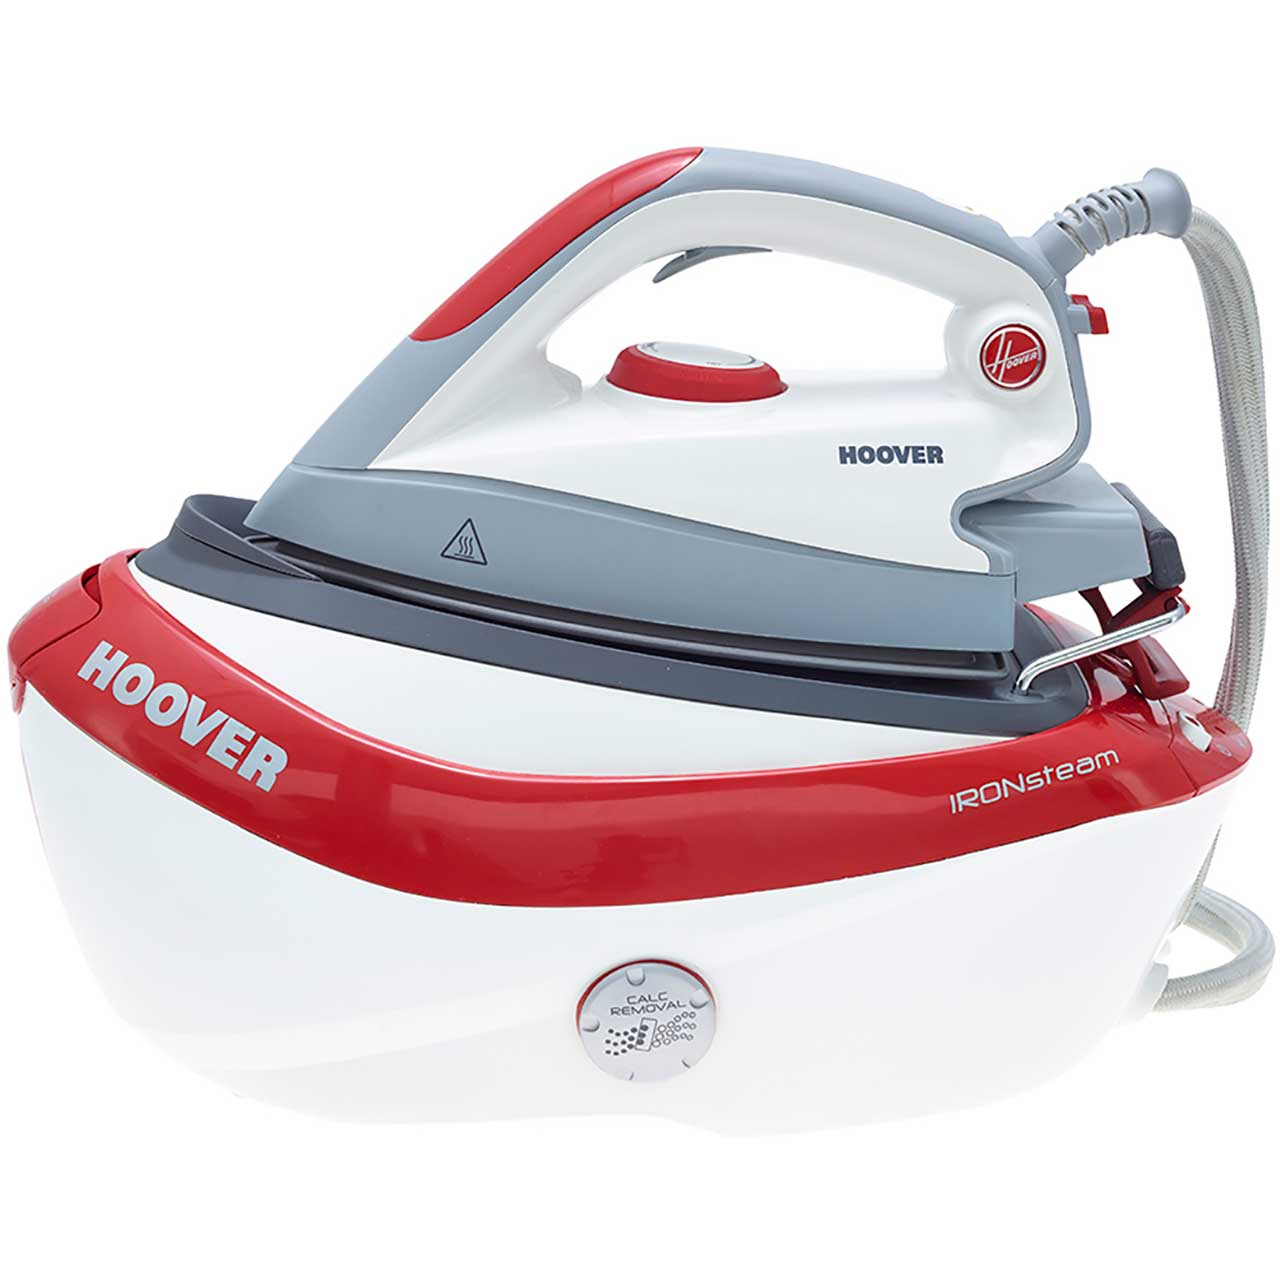 Hoover IronSteam SFM4003 Pressurised Steam Generator Iron